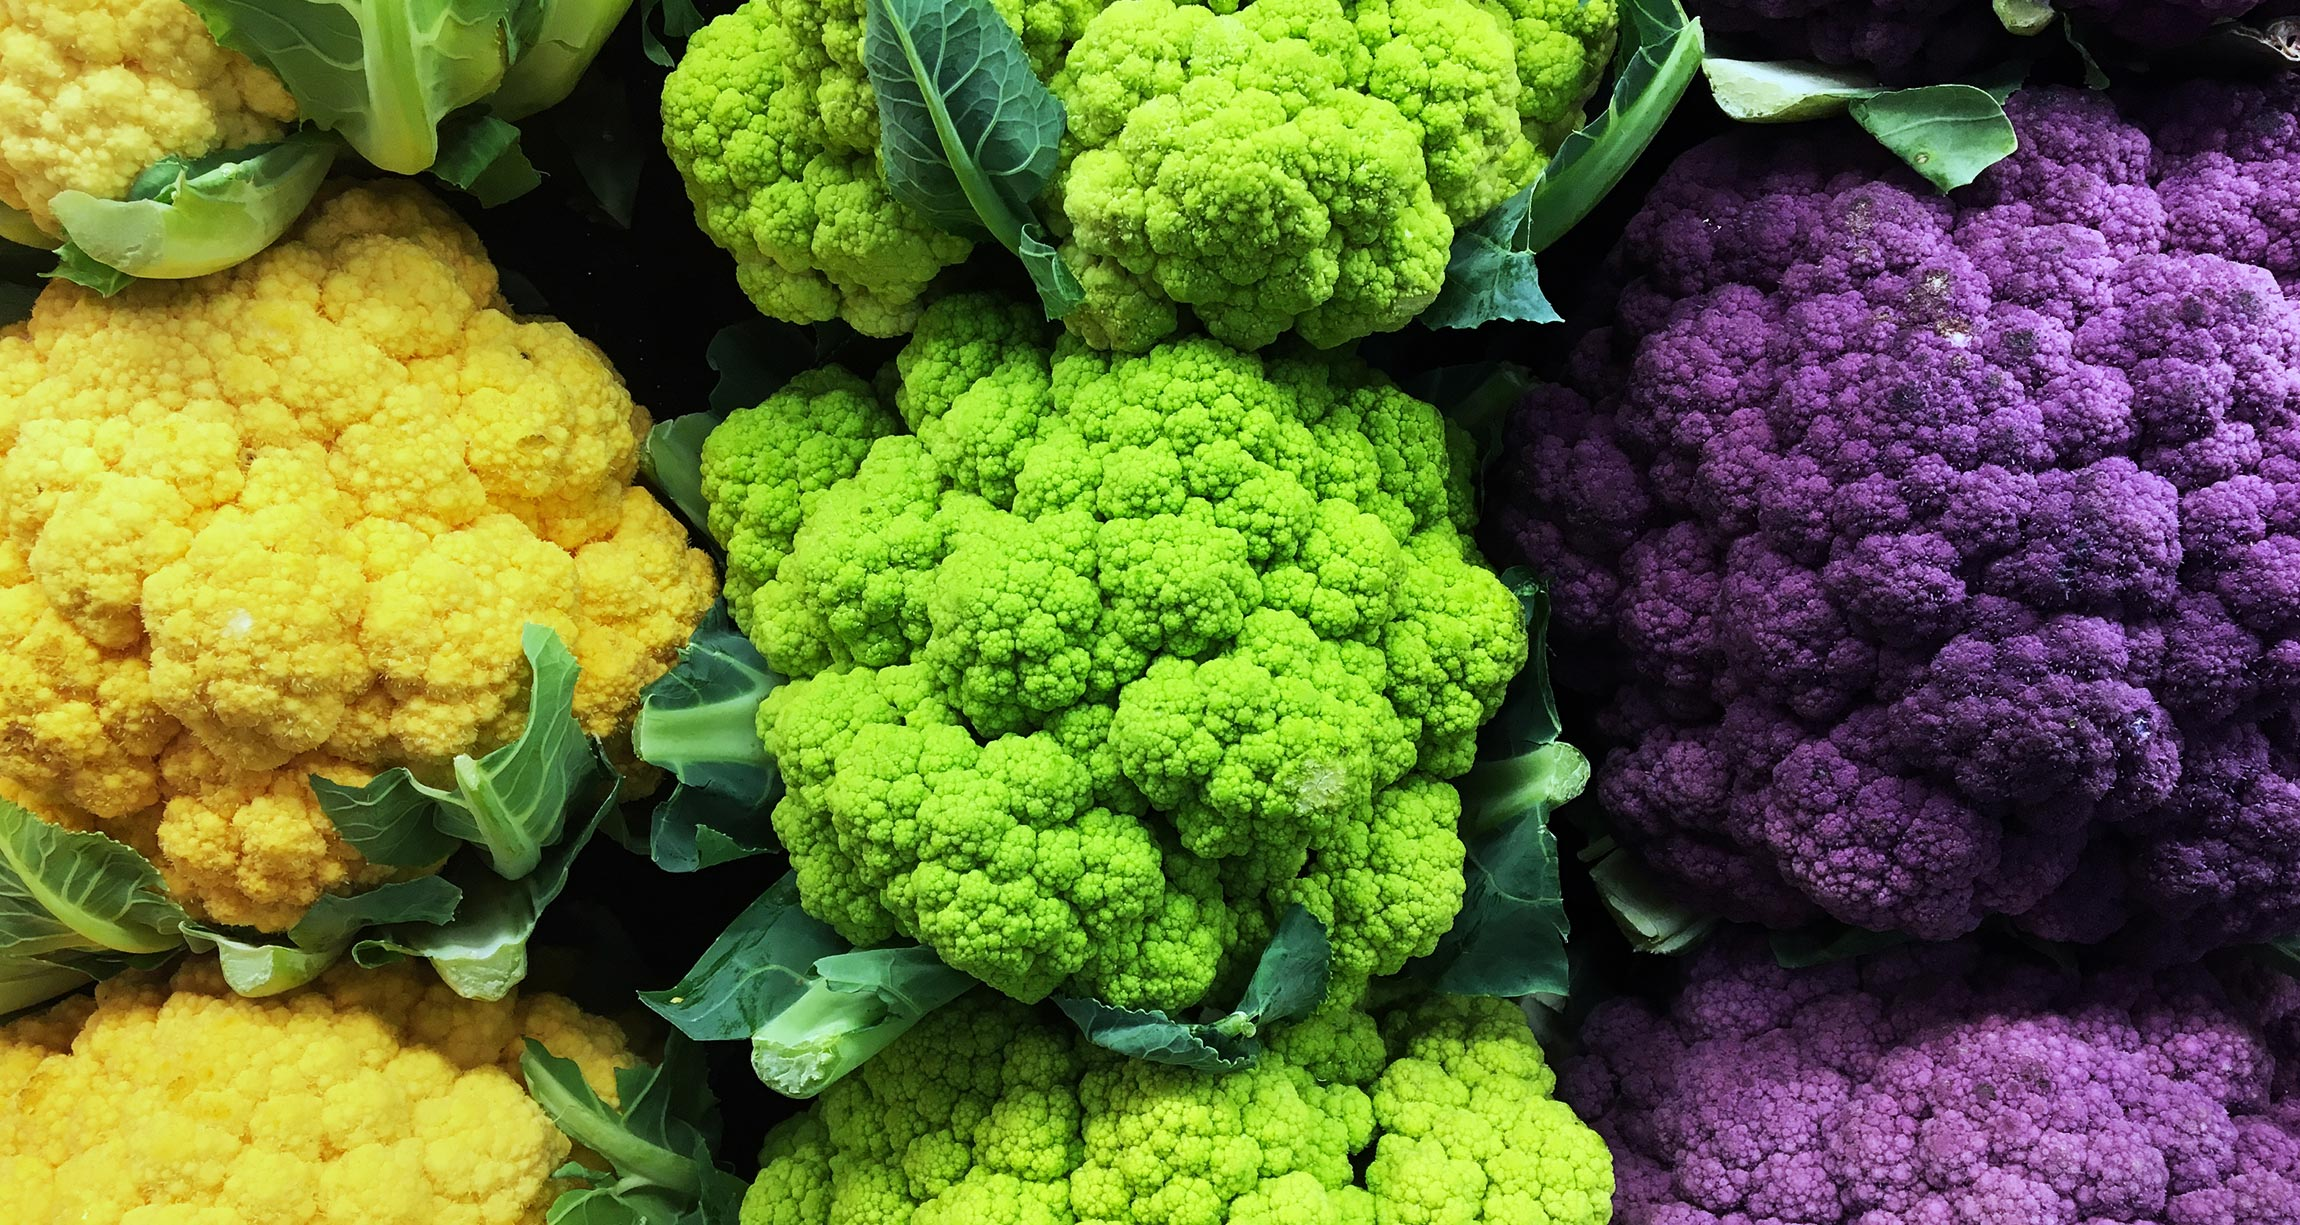 yellow, green, and purple cauliflower